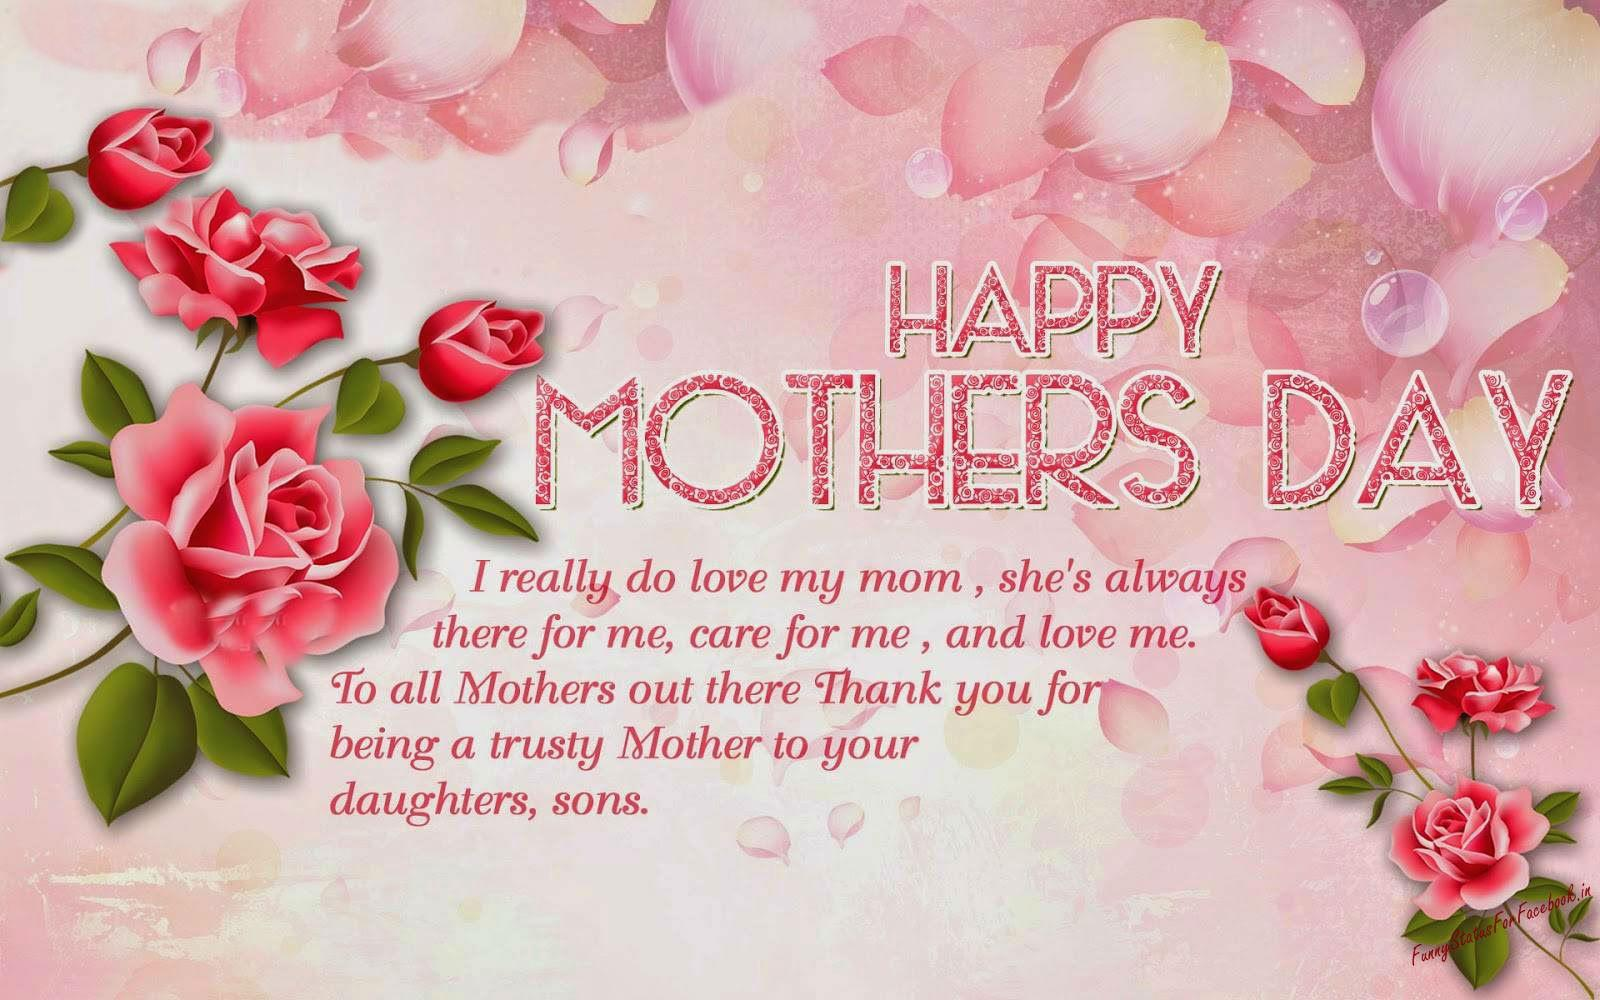 Happy mothers day 2017 images quotes wishes greetings messages mothers day 2017 greetings m4hsunfo